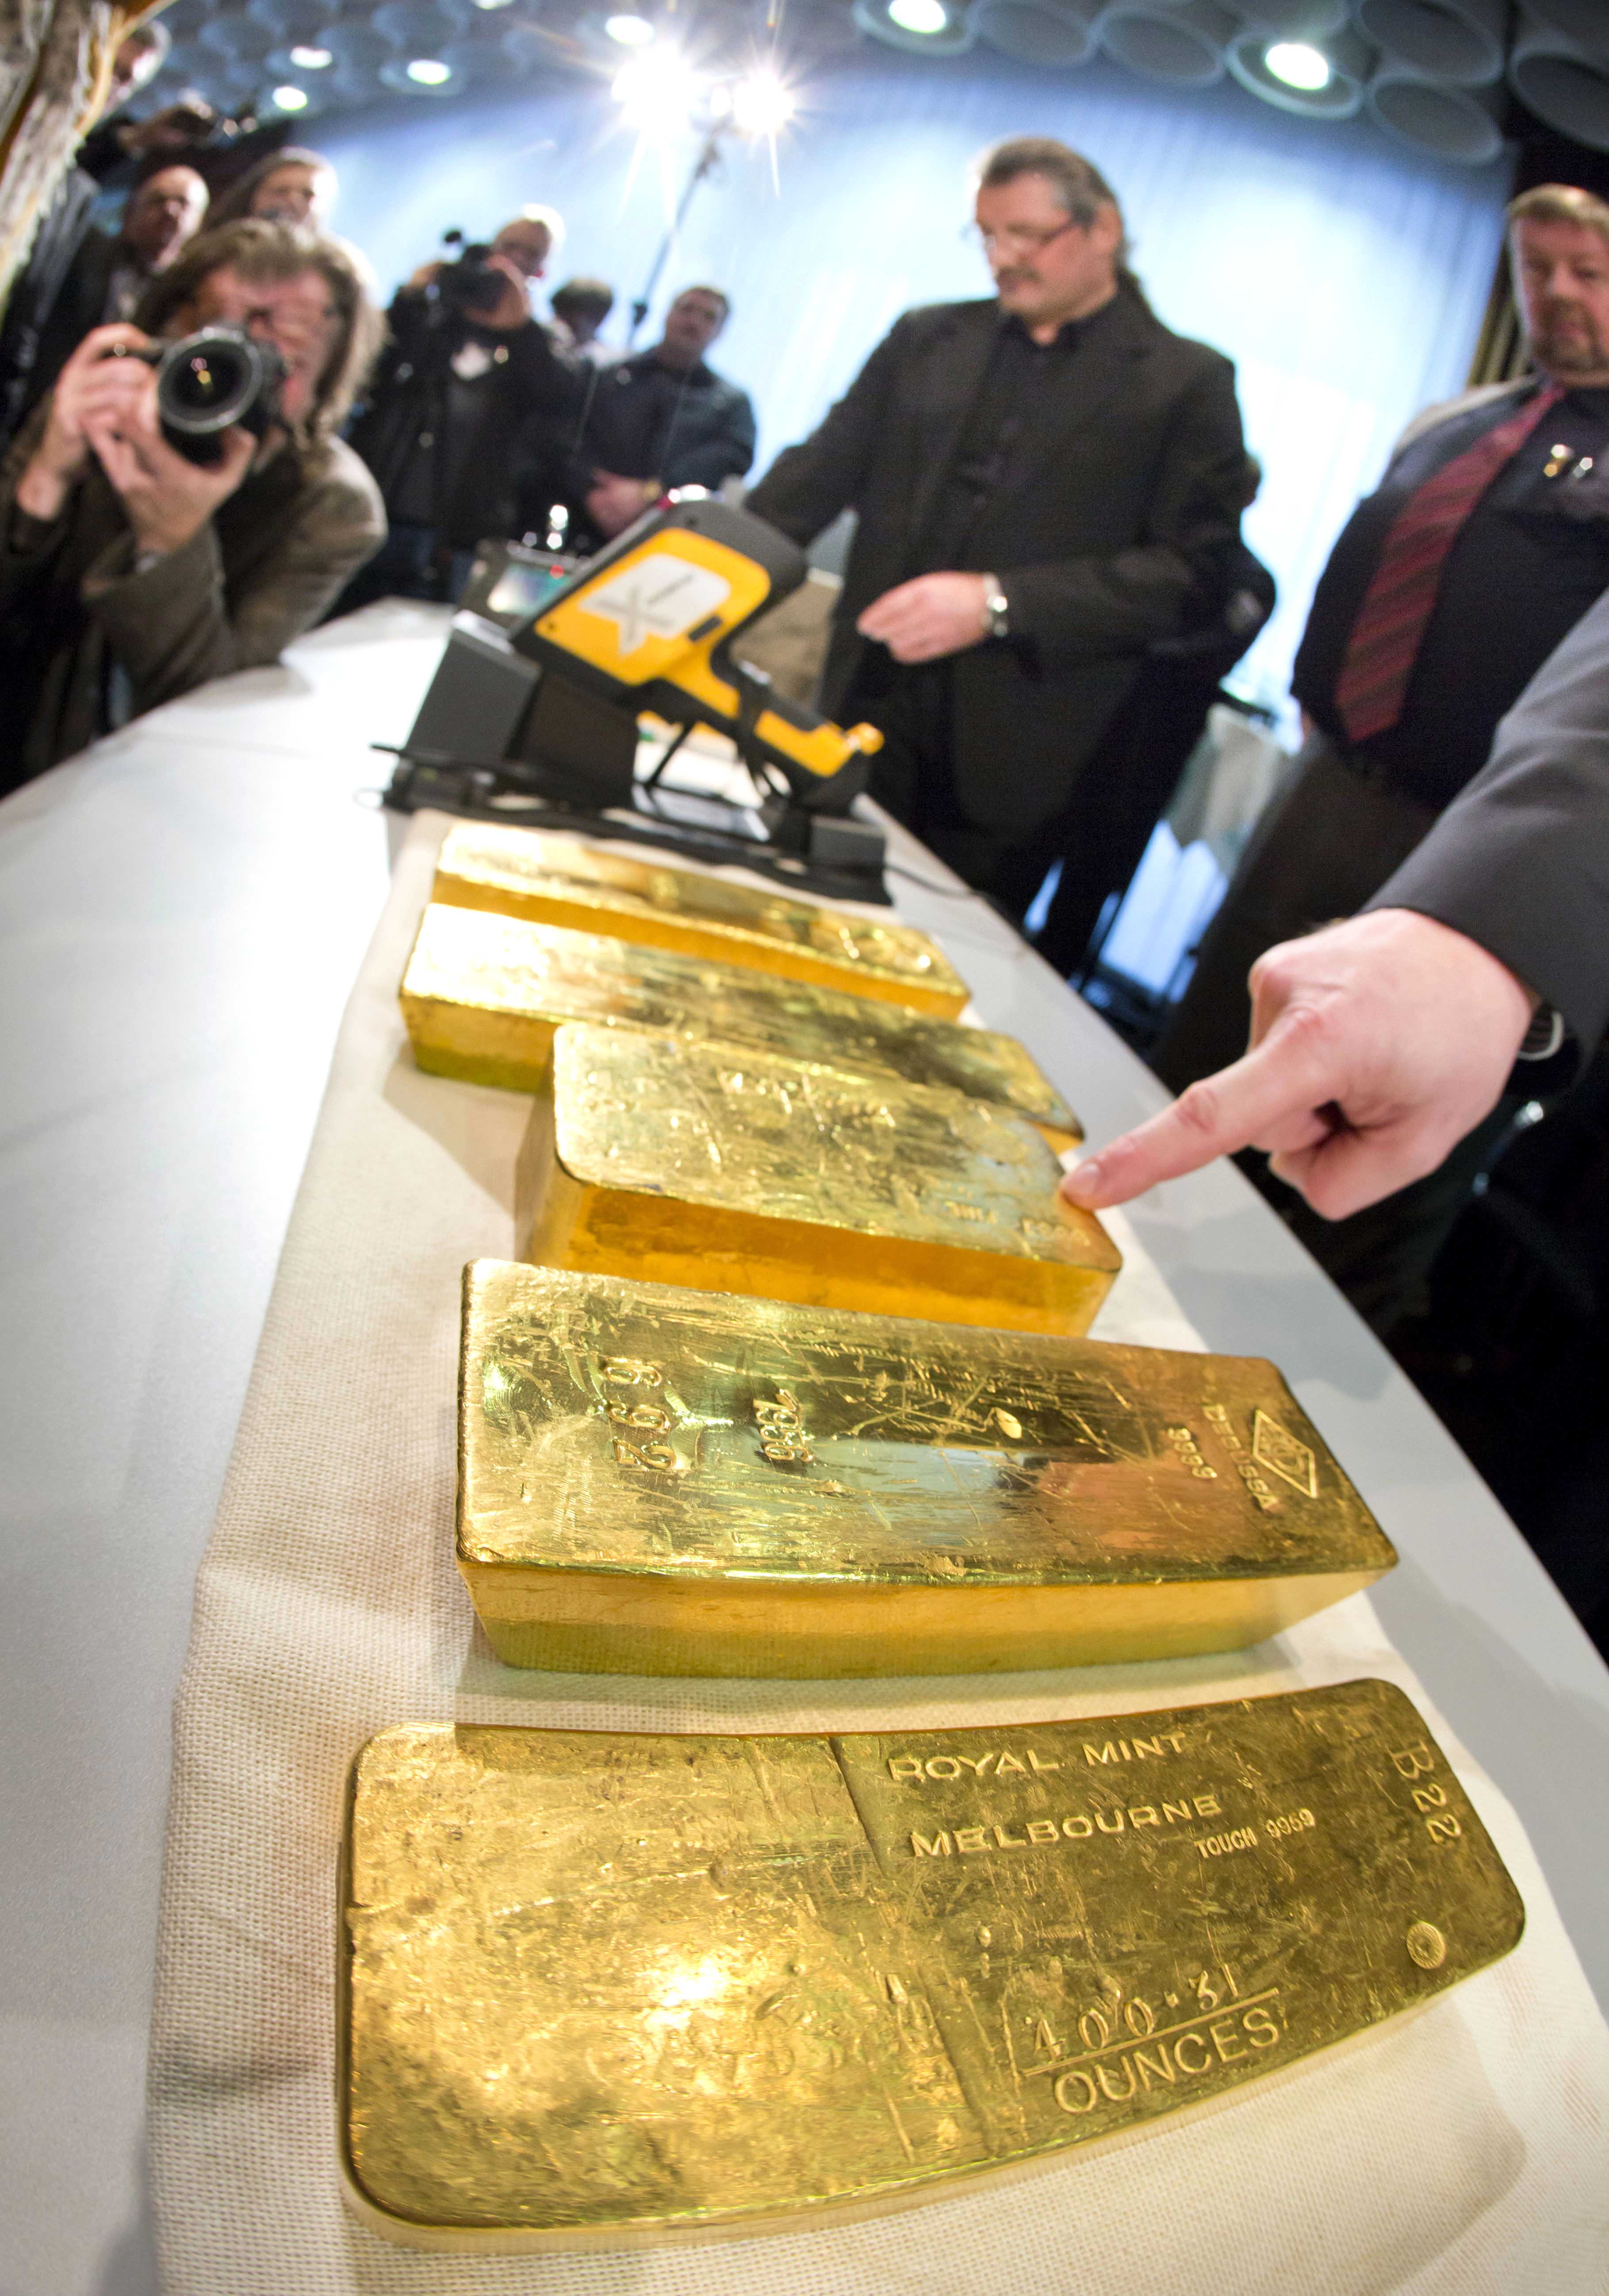 Gold ingots are on display during a press conference of Germany's Central Bank at their headquarters in Frankfurt, Wednesday Jan. 16, 2013. Germany's central bank is to bring back home some US $36 billion ( 27 billion euro) worth of gold stored in the United States and France. The Bundesbank said in a statement Wednesday that it will repatriate all 374 tons of gold it had stored in Paris by 2020. An additional 300 tons - equivalent to 8 percent of the Bundesbank's total reserves worth about US $183 billion will also be shipped from New York to Frankfurt. Frankfurt will hold half of Germany's 3,400 tons of gold by 2020, with New York retaining 37 percent and London storing 13 percent. The move follows criticism from Germany's independent Federal Auditors' Office last year bemoaning the central bank's oversight of gold reserves abroad.(AP Photo/ dpa/ Frank Rumpenhorst)